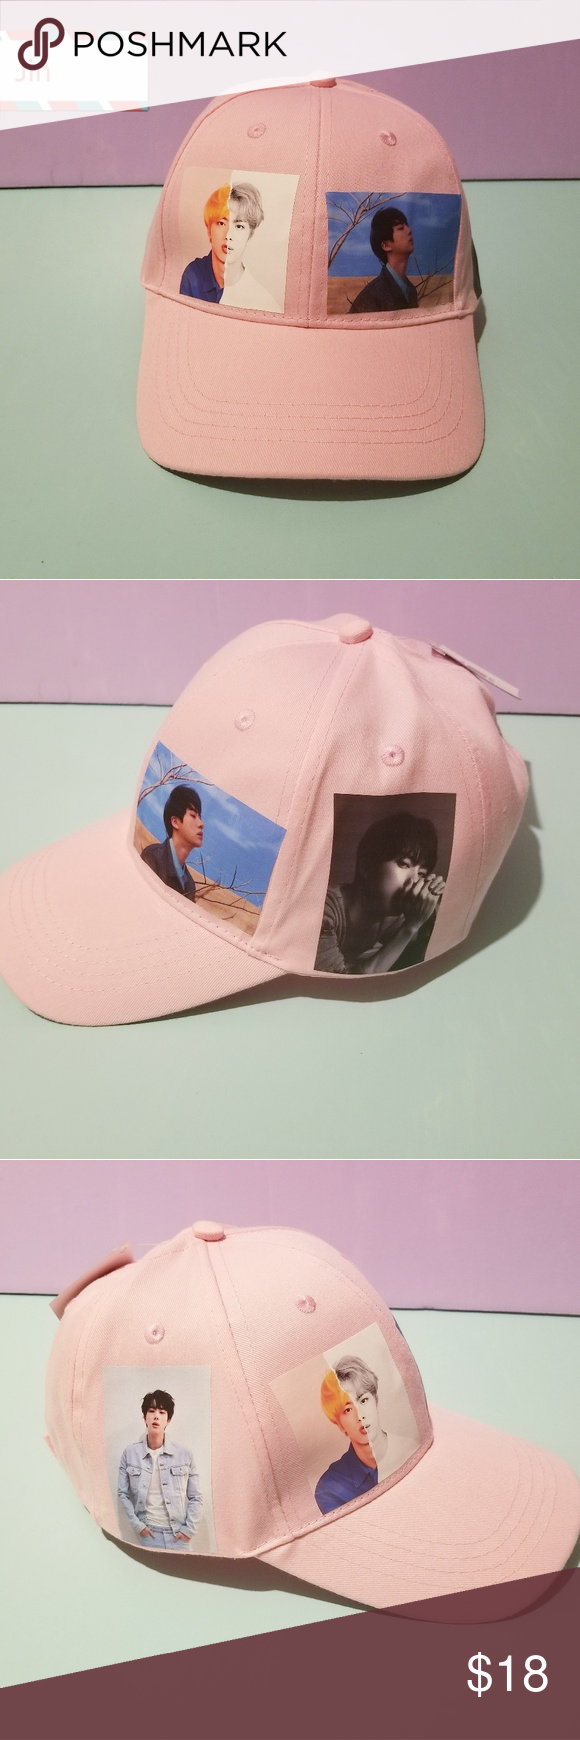 BTS HATS JIN Everyone needs one simple cap that you can wear that represents who…